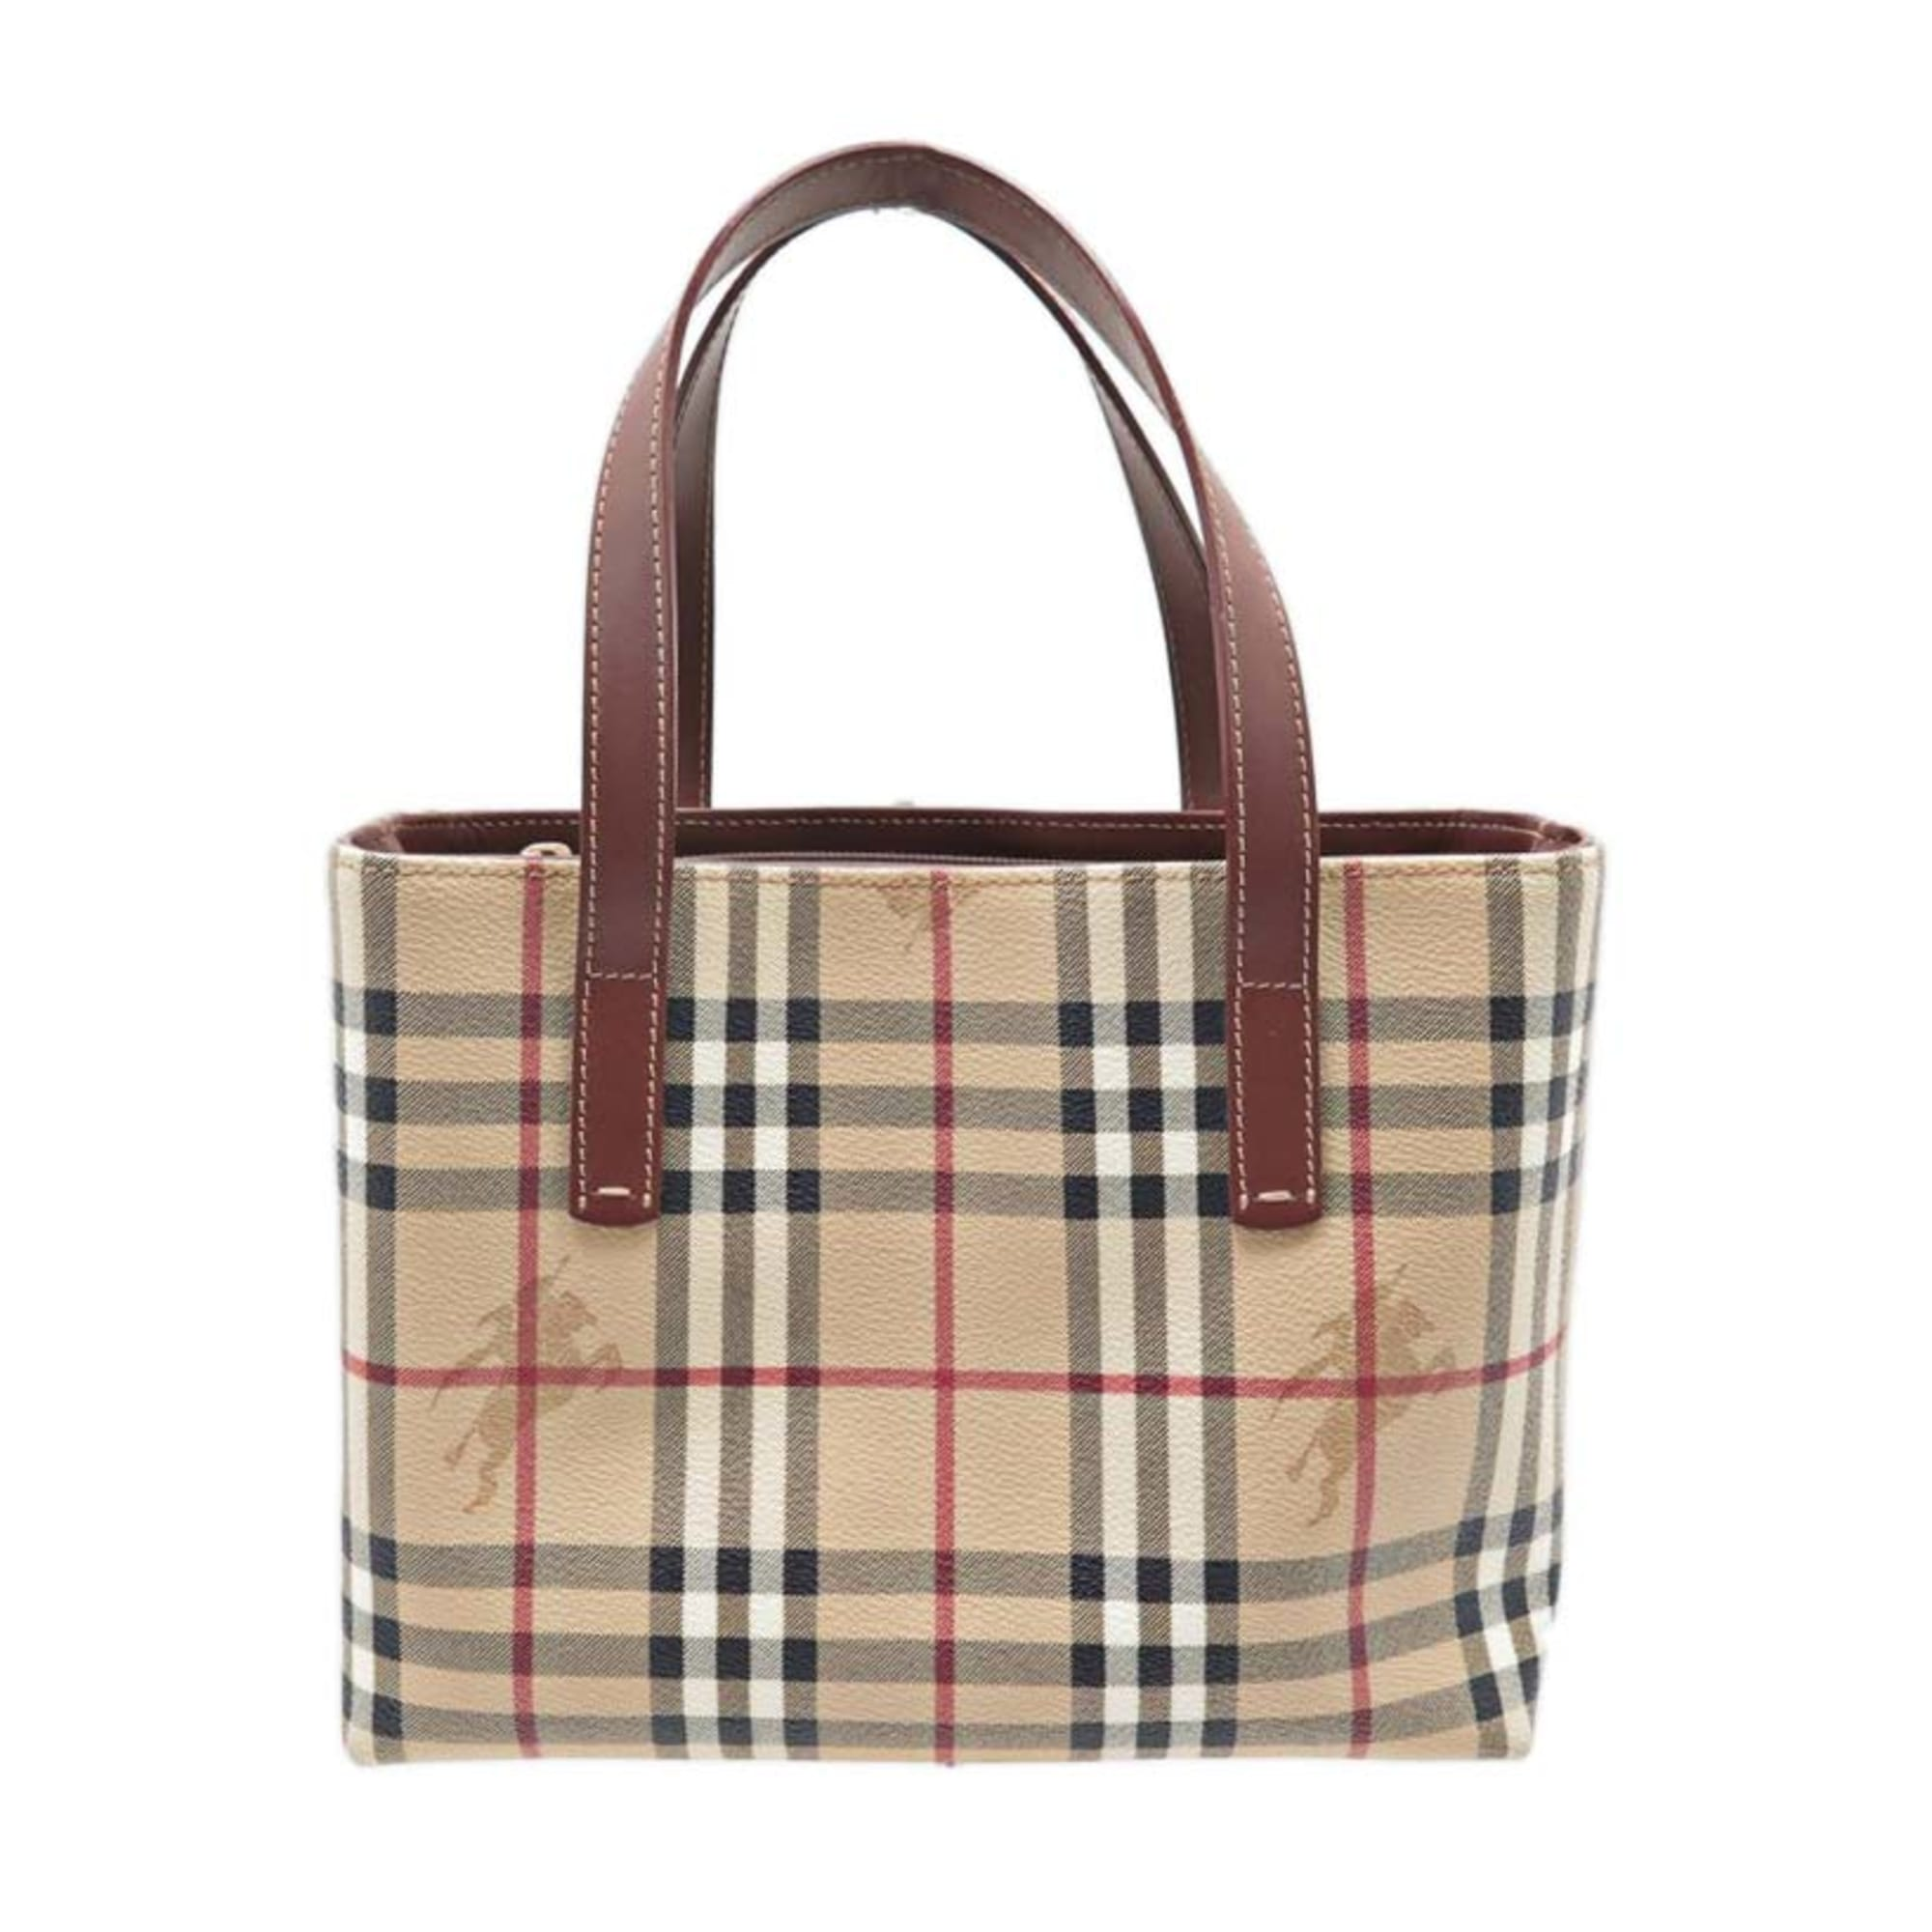 En Par Beige Cuir À Encherexpert Burberry Paris14 Sac Main Vendu 8On0wmvN